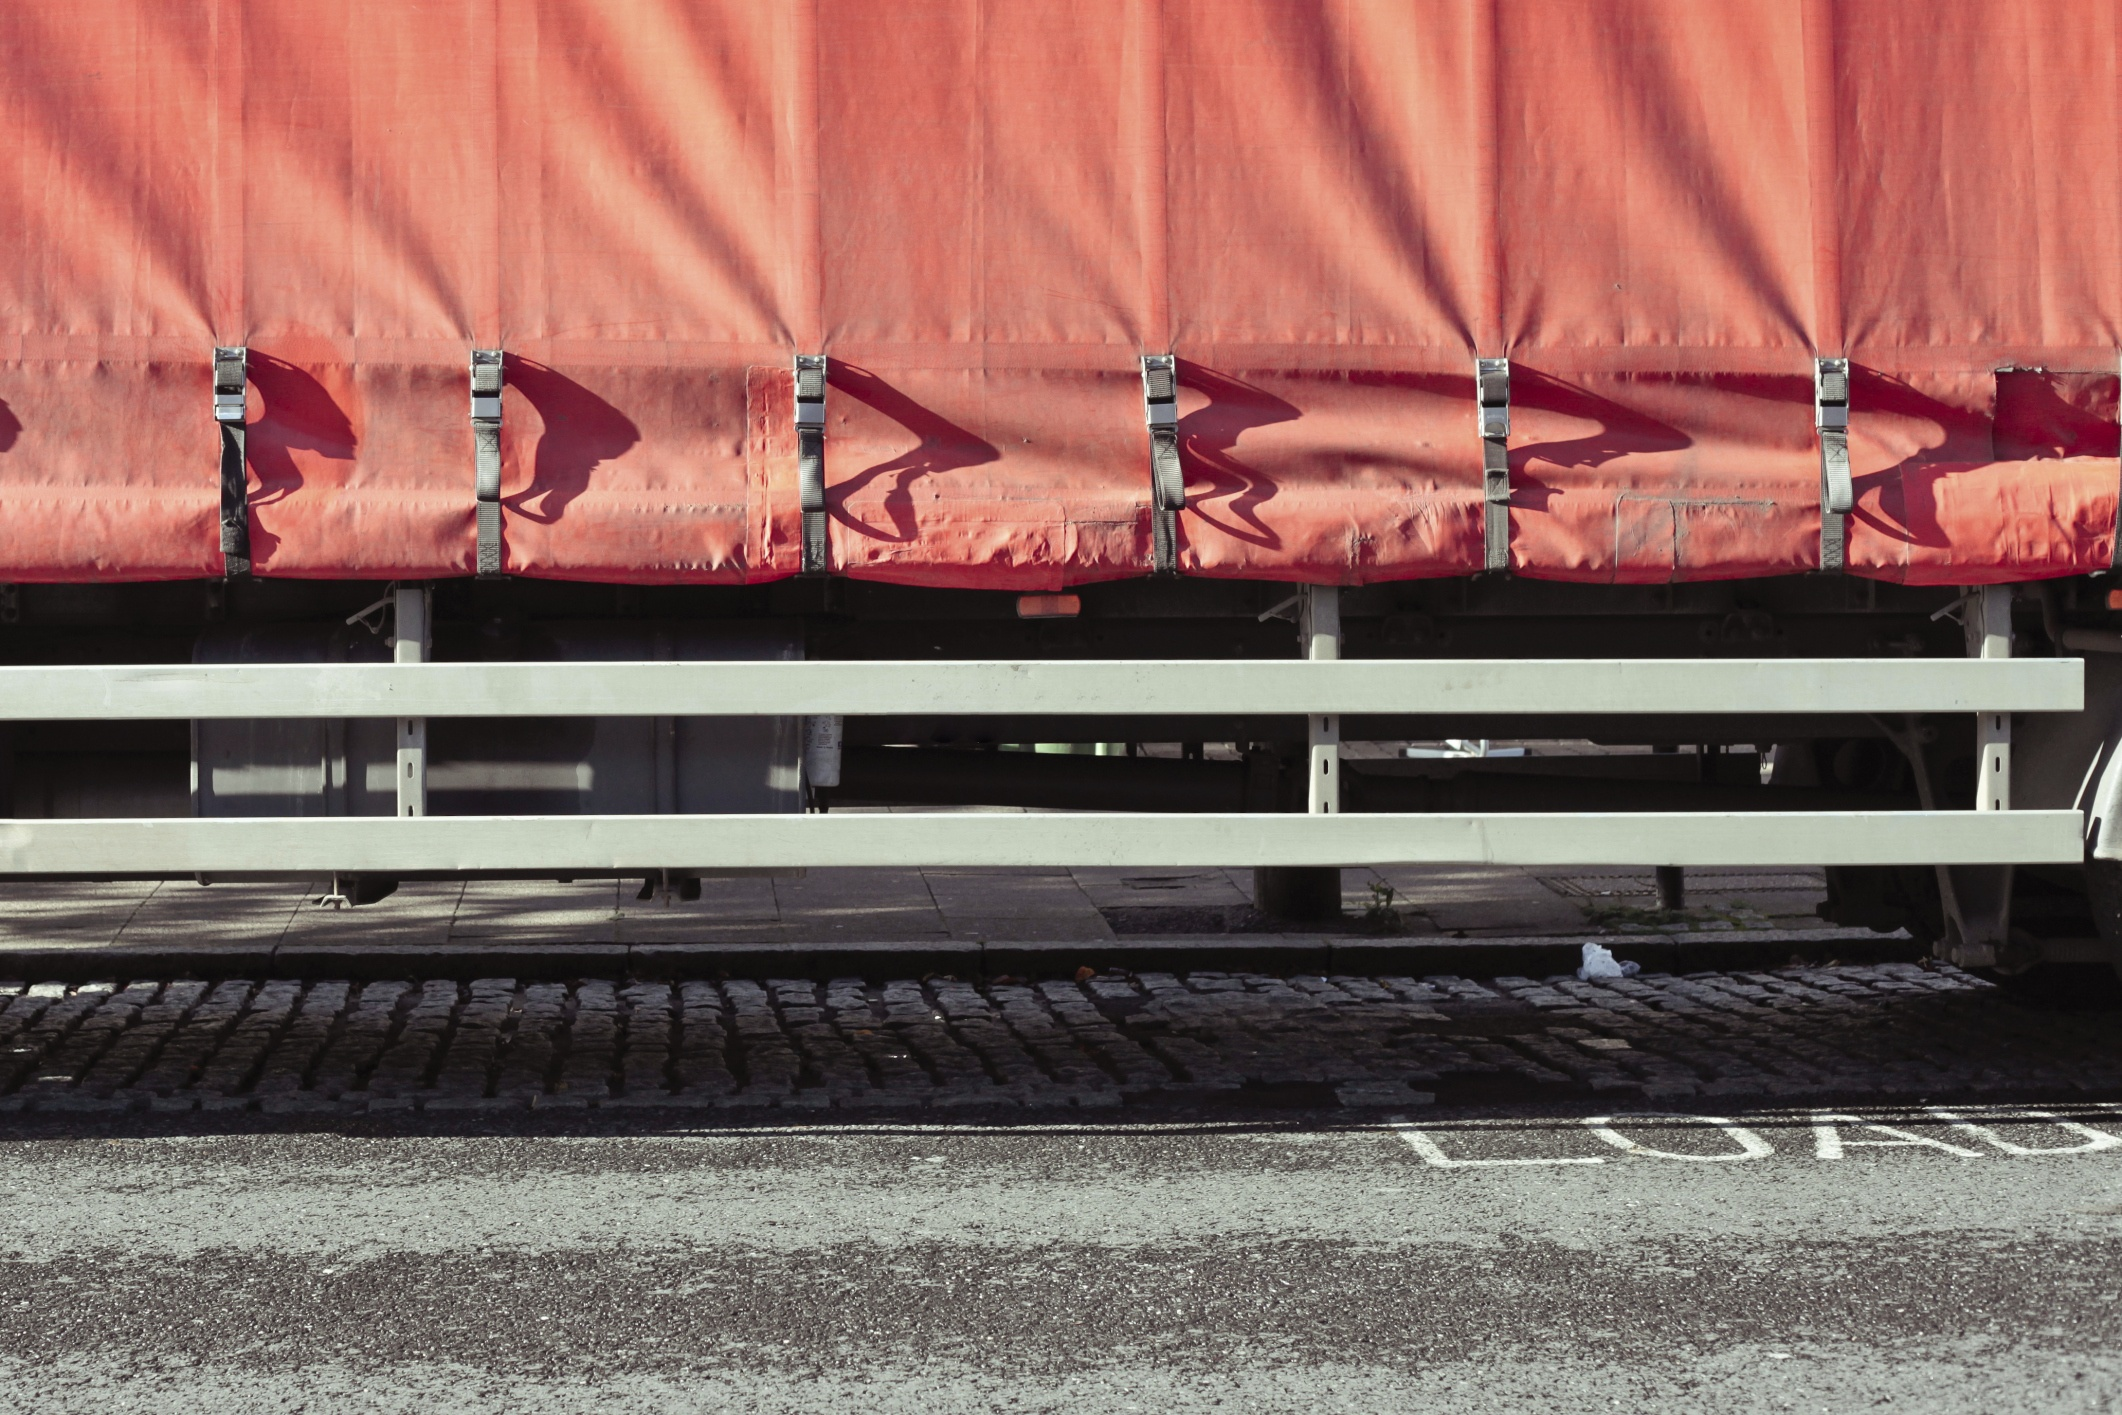 Tarping And Truck Safety: Training Your Drivers And Operators